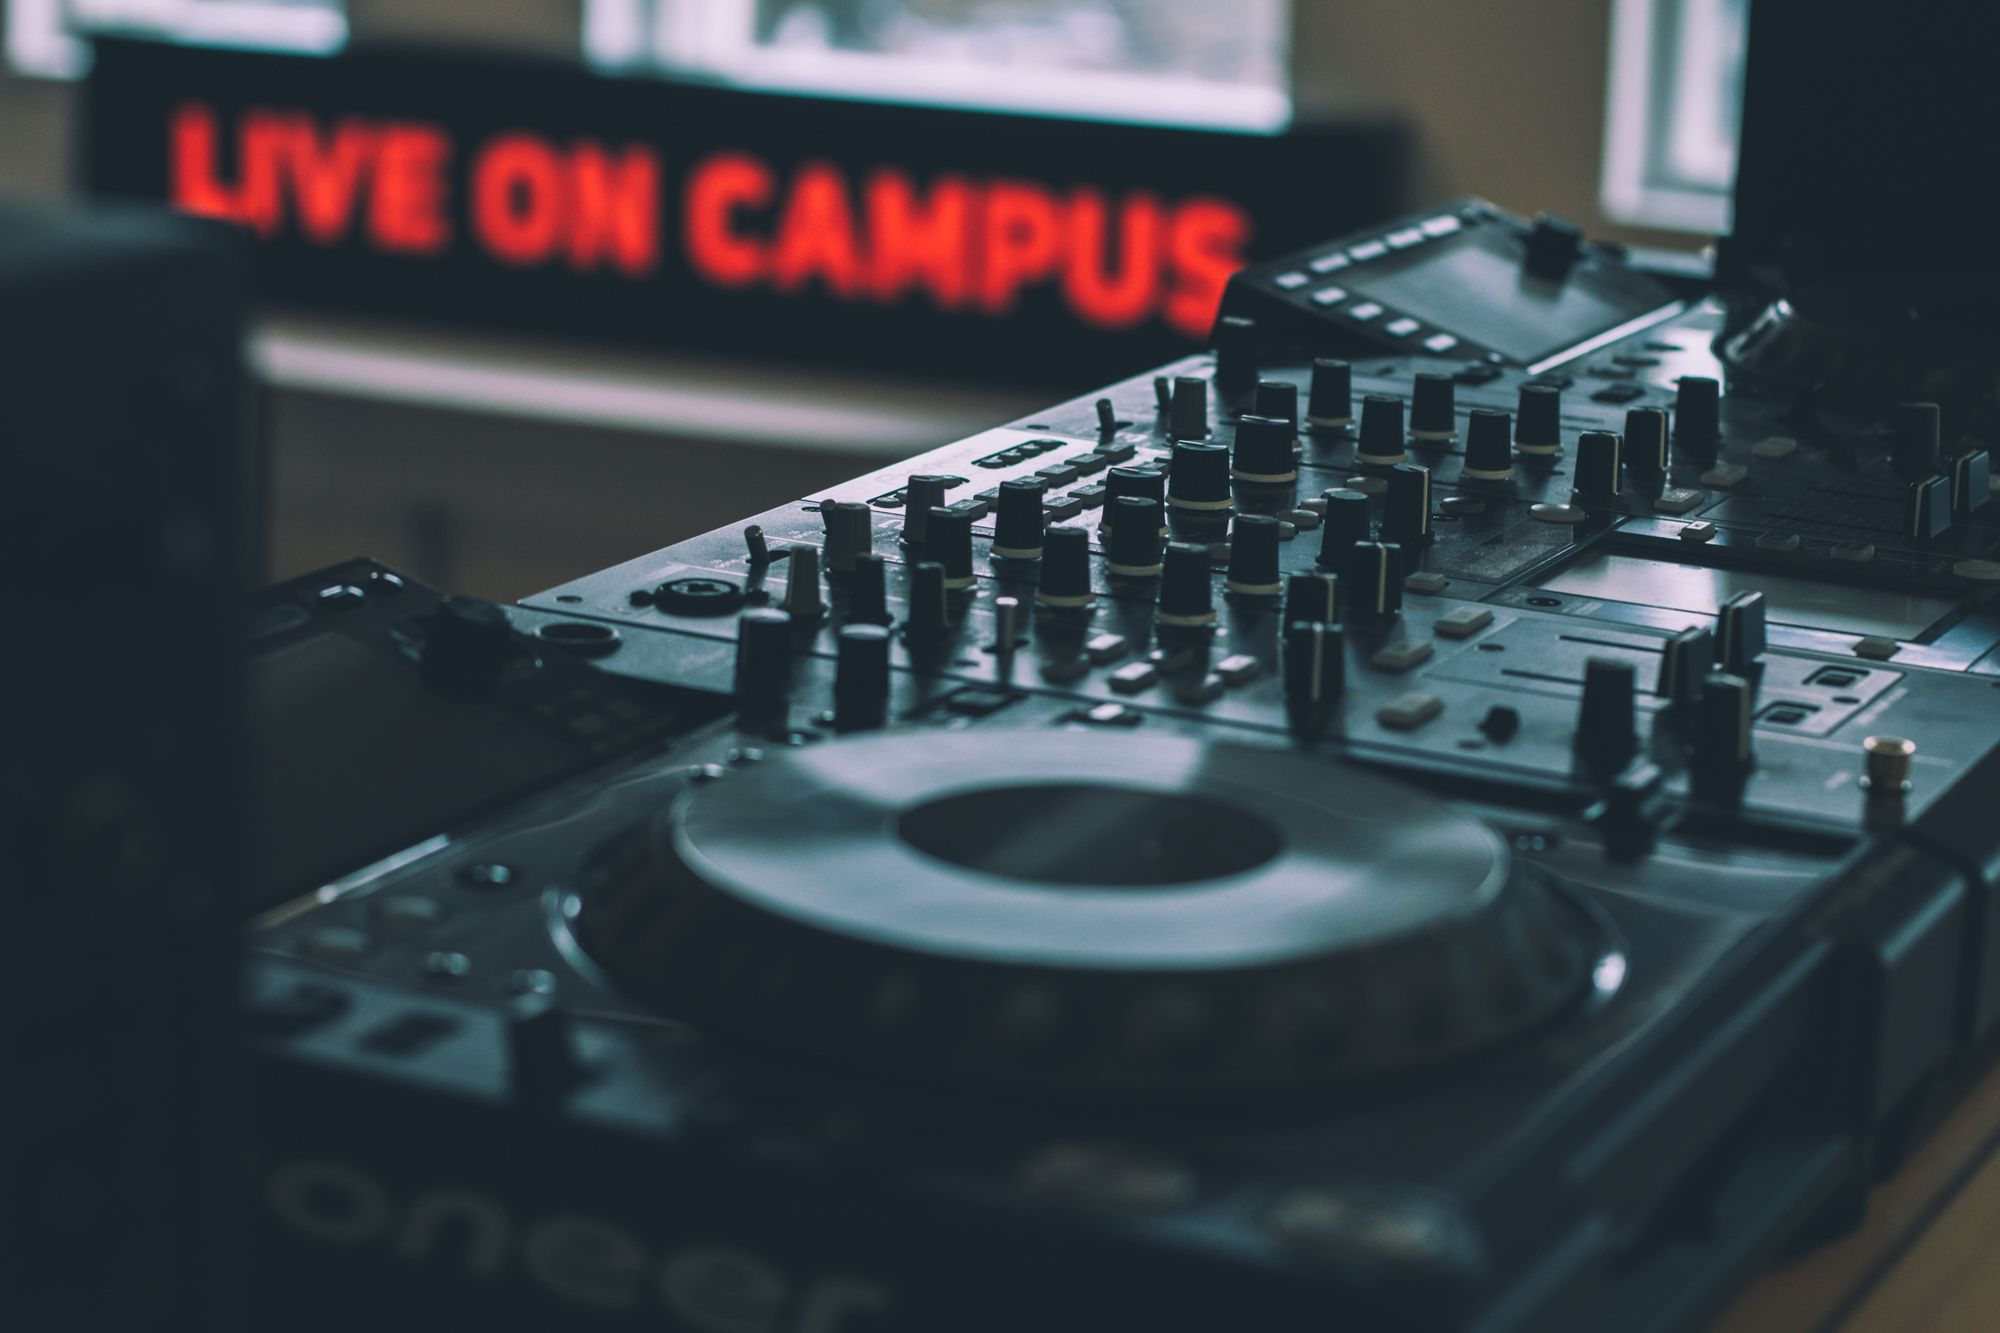 Mix music or add a soundtrack to your corporate video